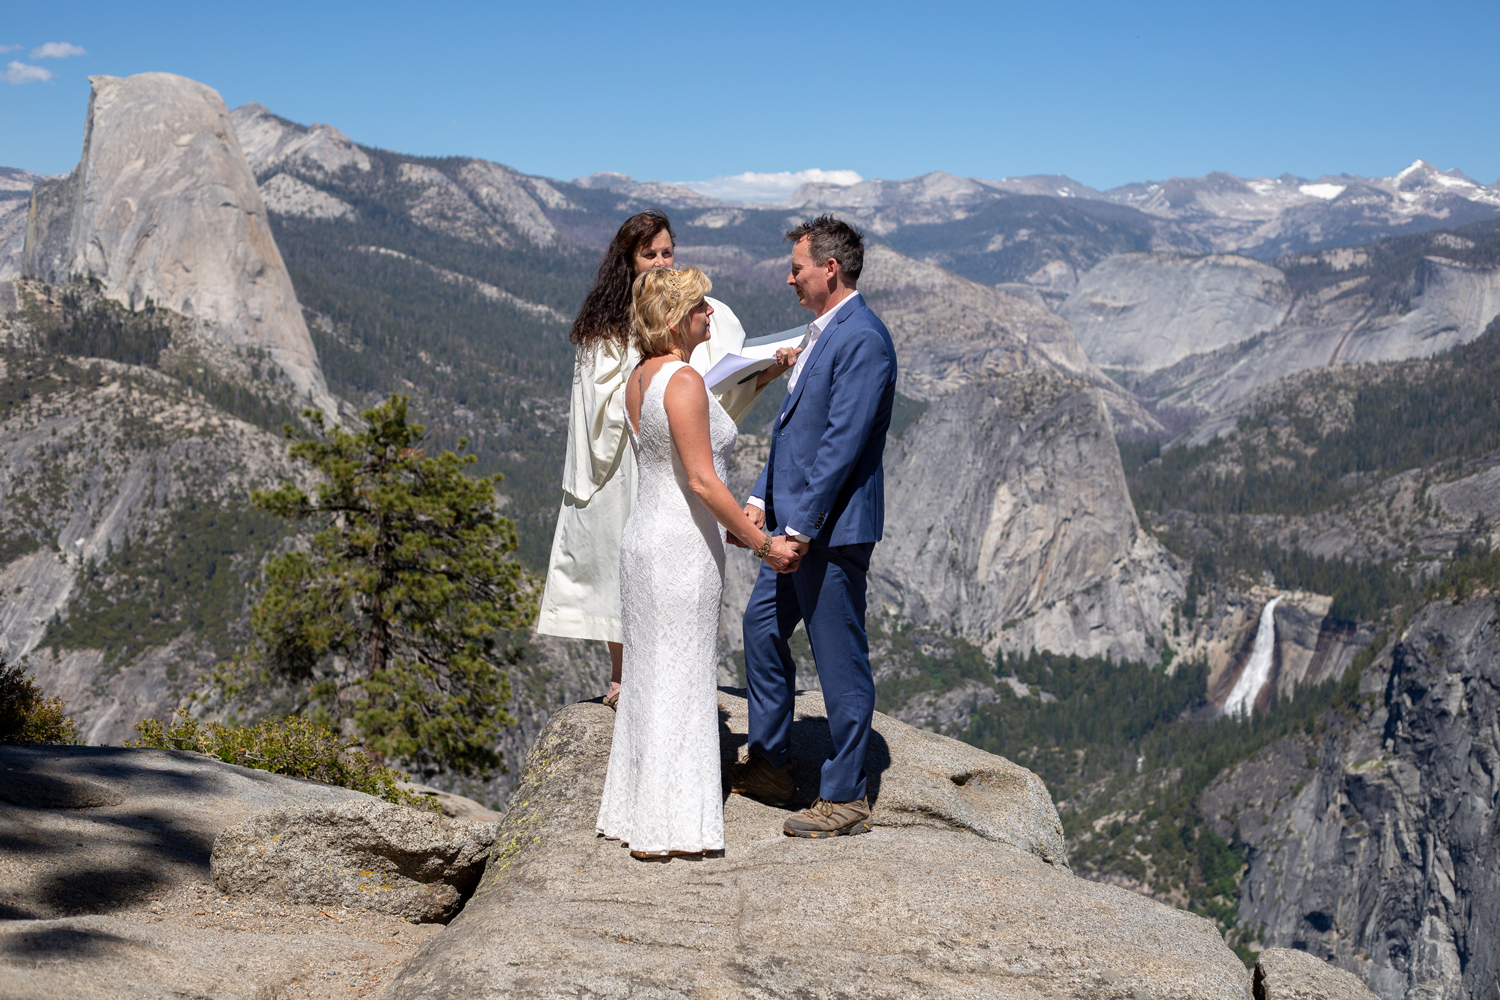 Yosemite-Wedding-photography-lisa-james (1).jpg